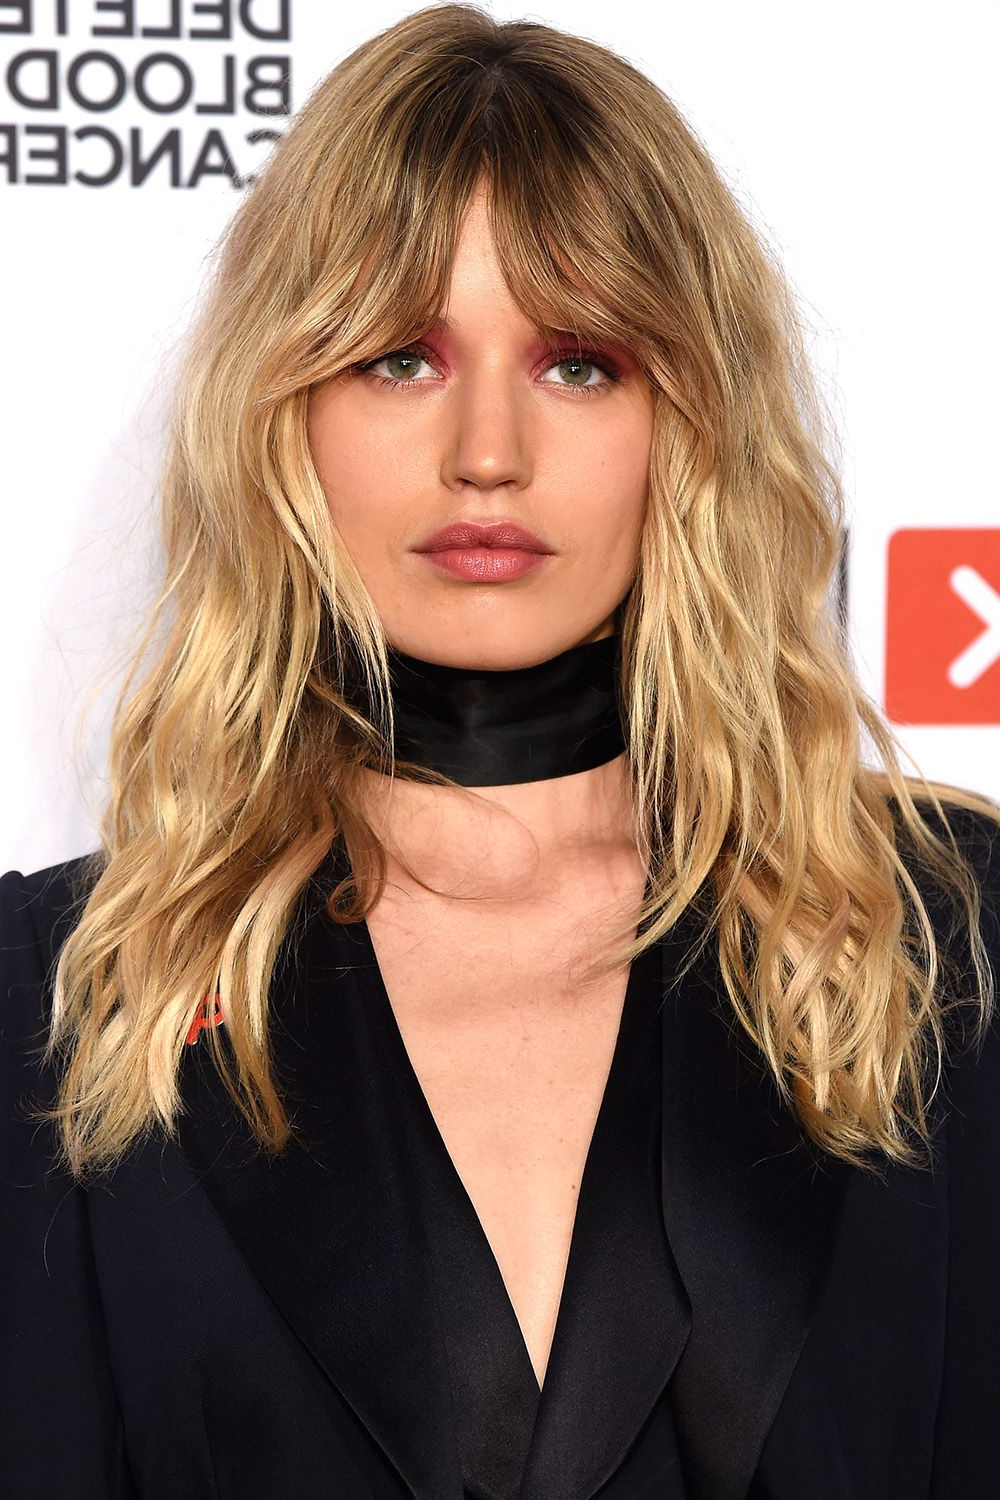 40 Best Medium Hairstyles – Celebrities With Shoulder Length Haircuts Regarding Short Bob Hairstyles With Whipped Curls And Babylights (View 25 of 25)